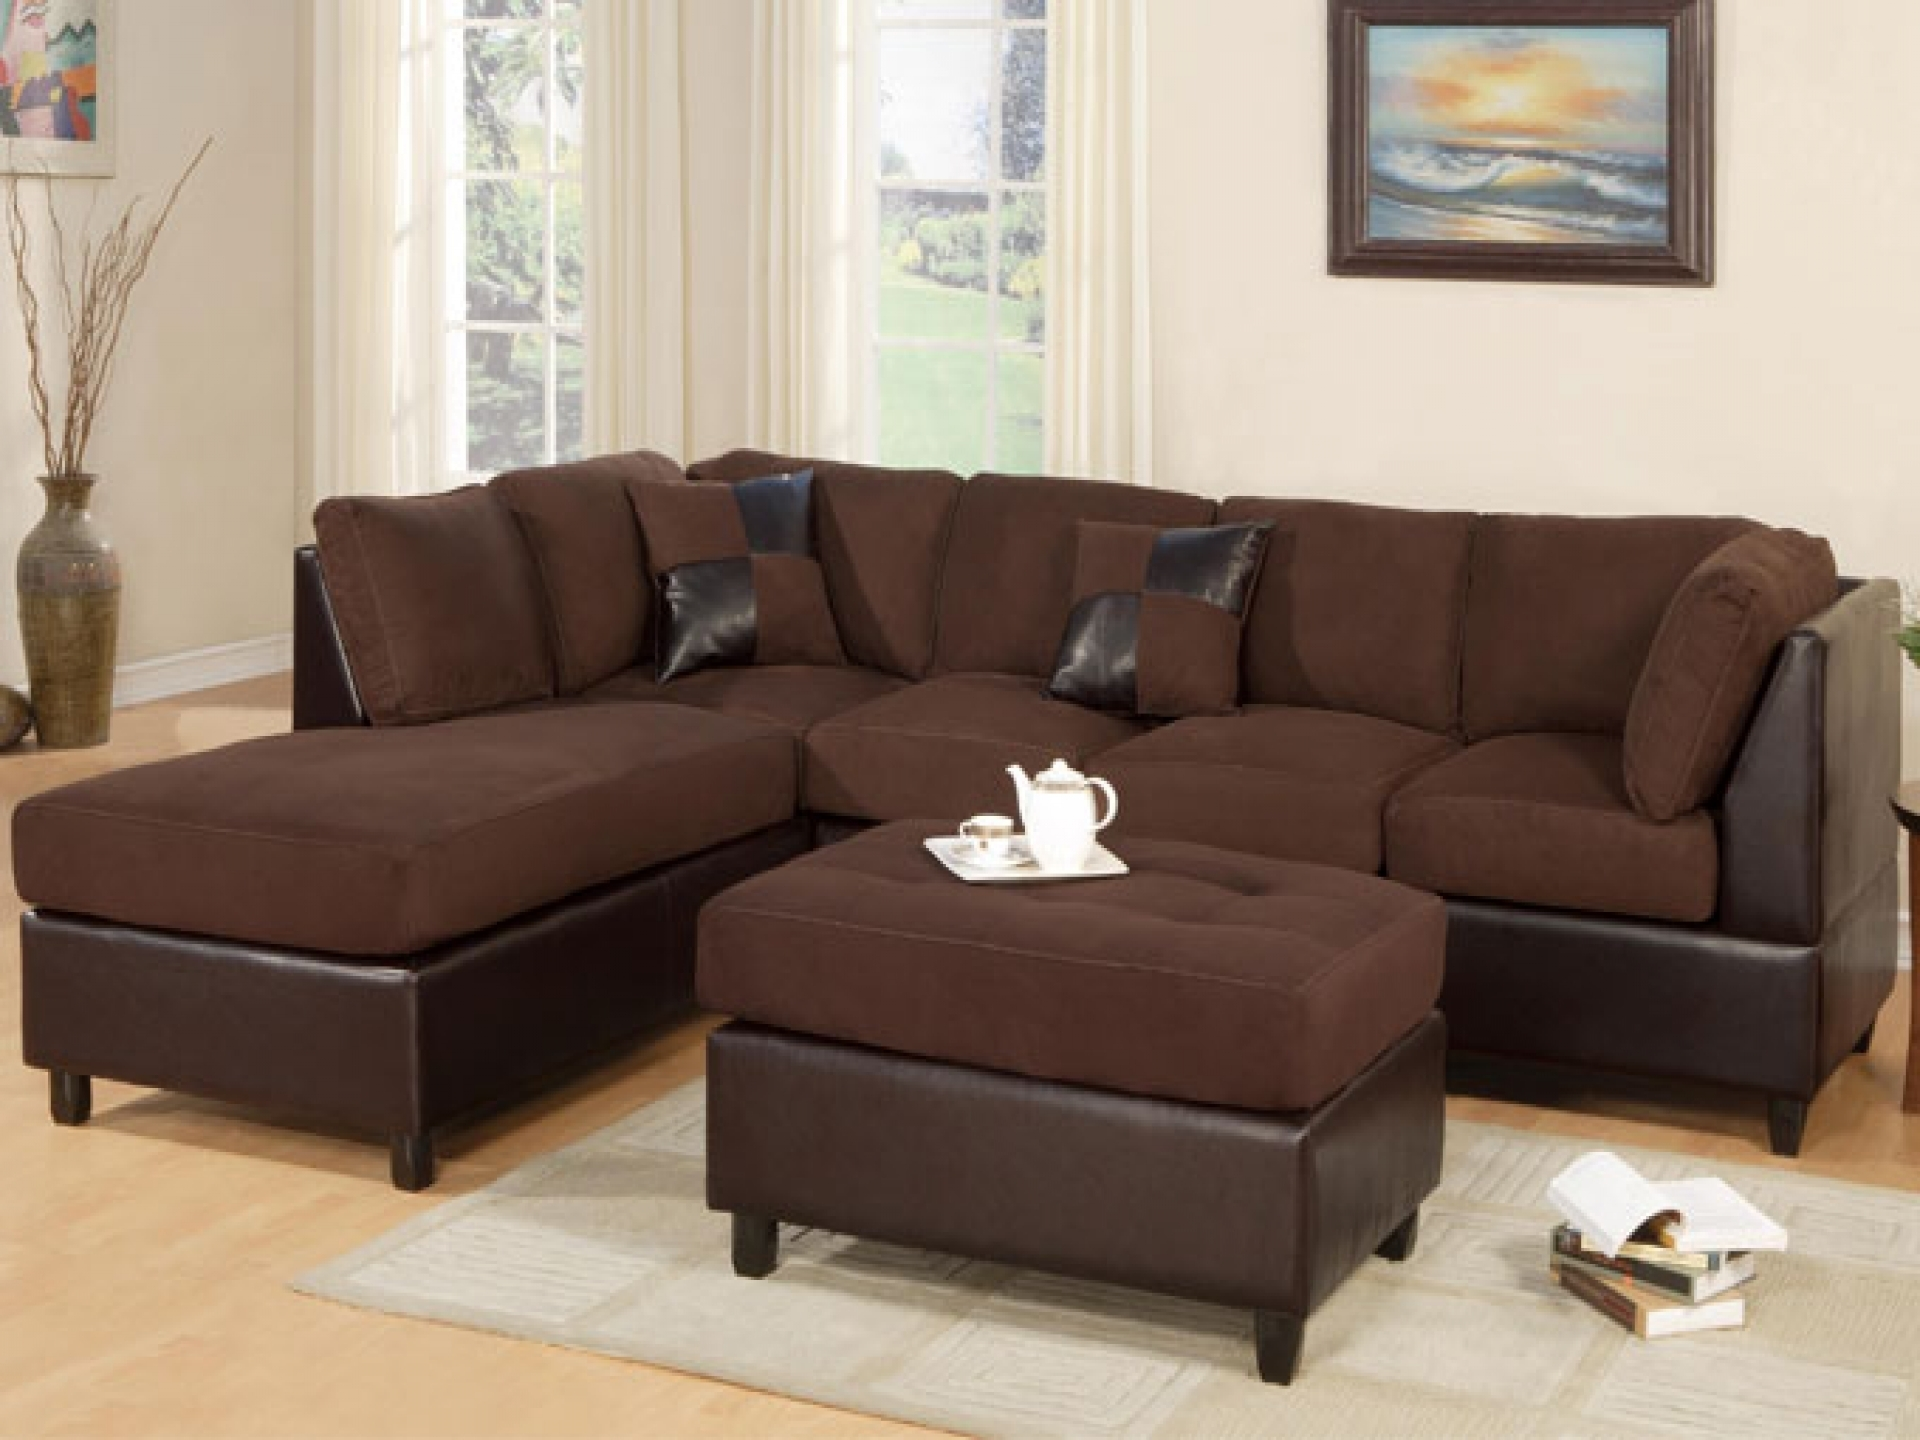 Furniture : Sectional Couch Okc Sectional Sofa Gainesville Fl With Regard To Gainesville Fl Sectional Sofas (View 7 of 10)